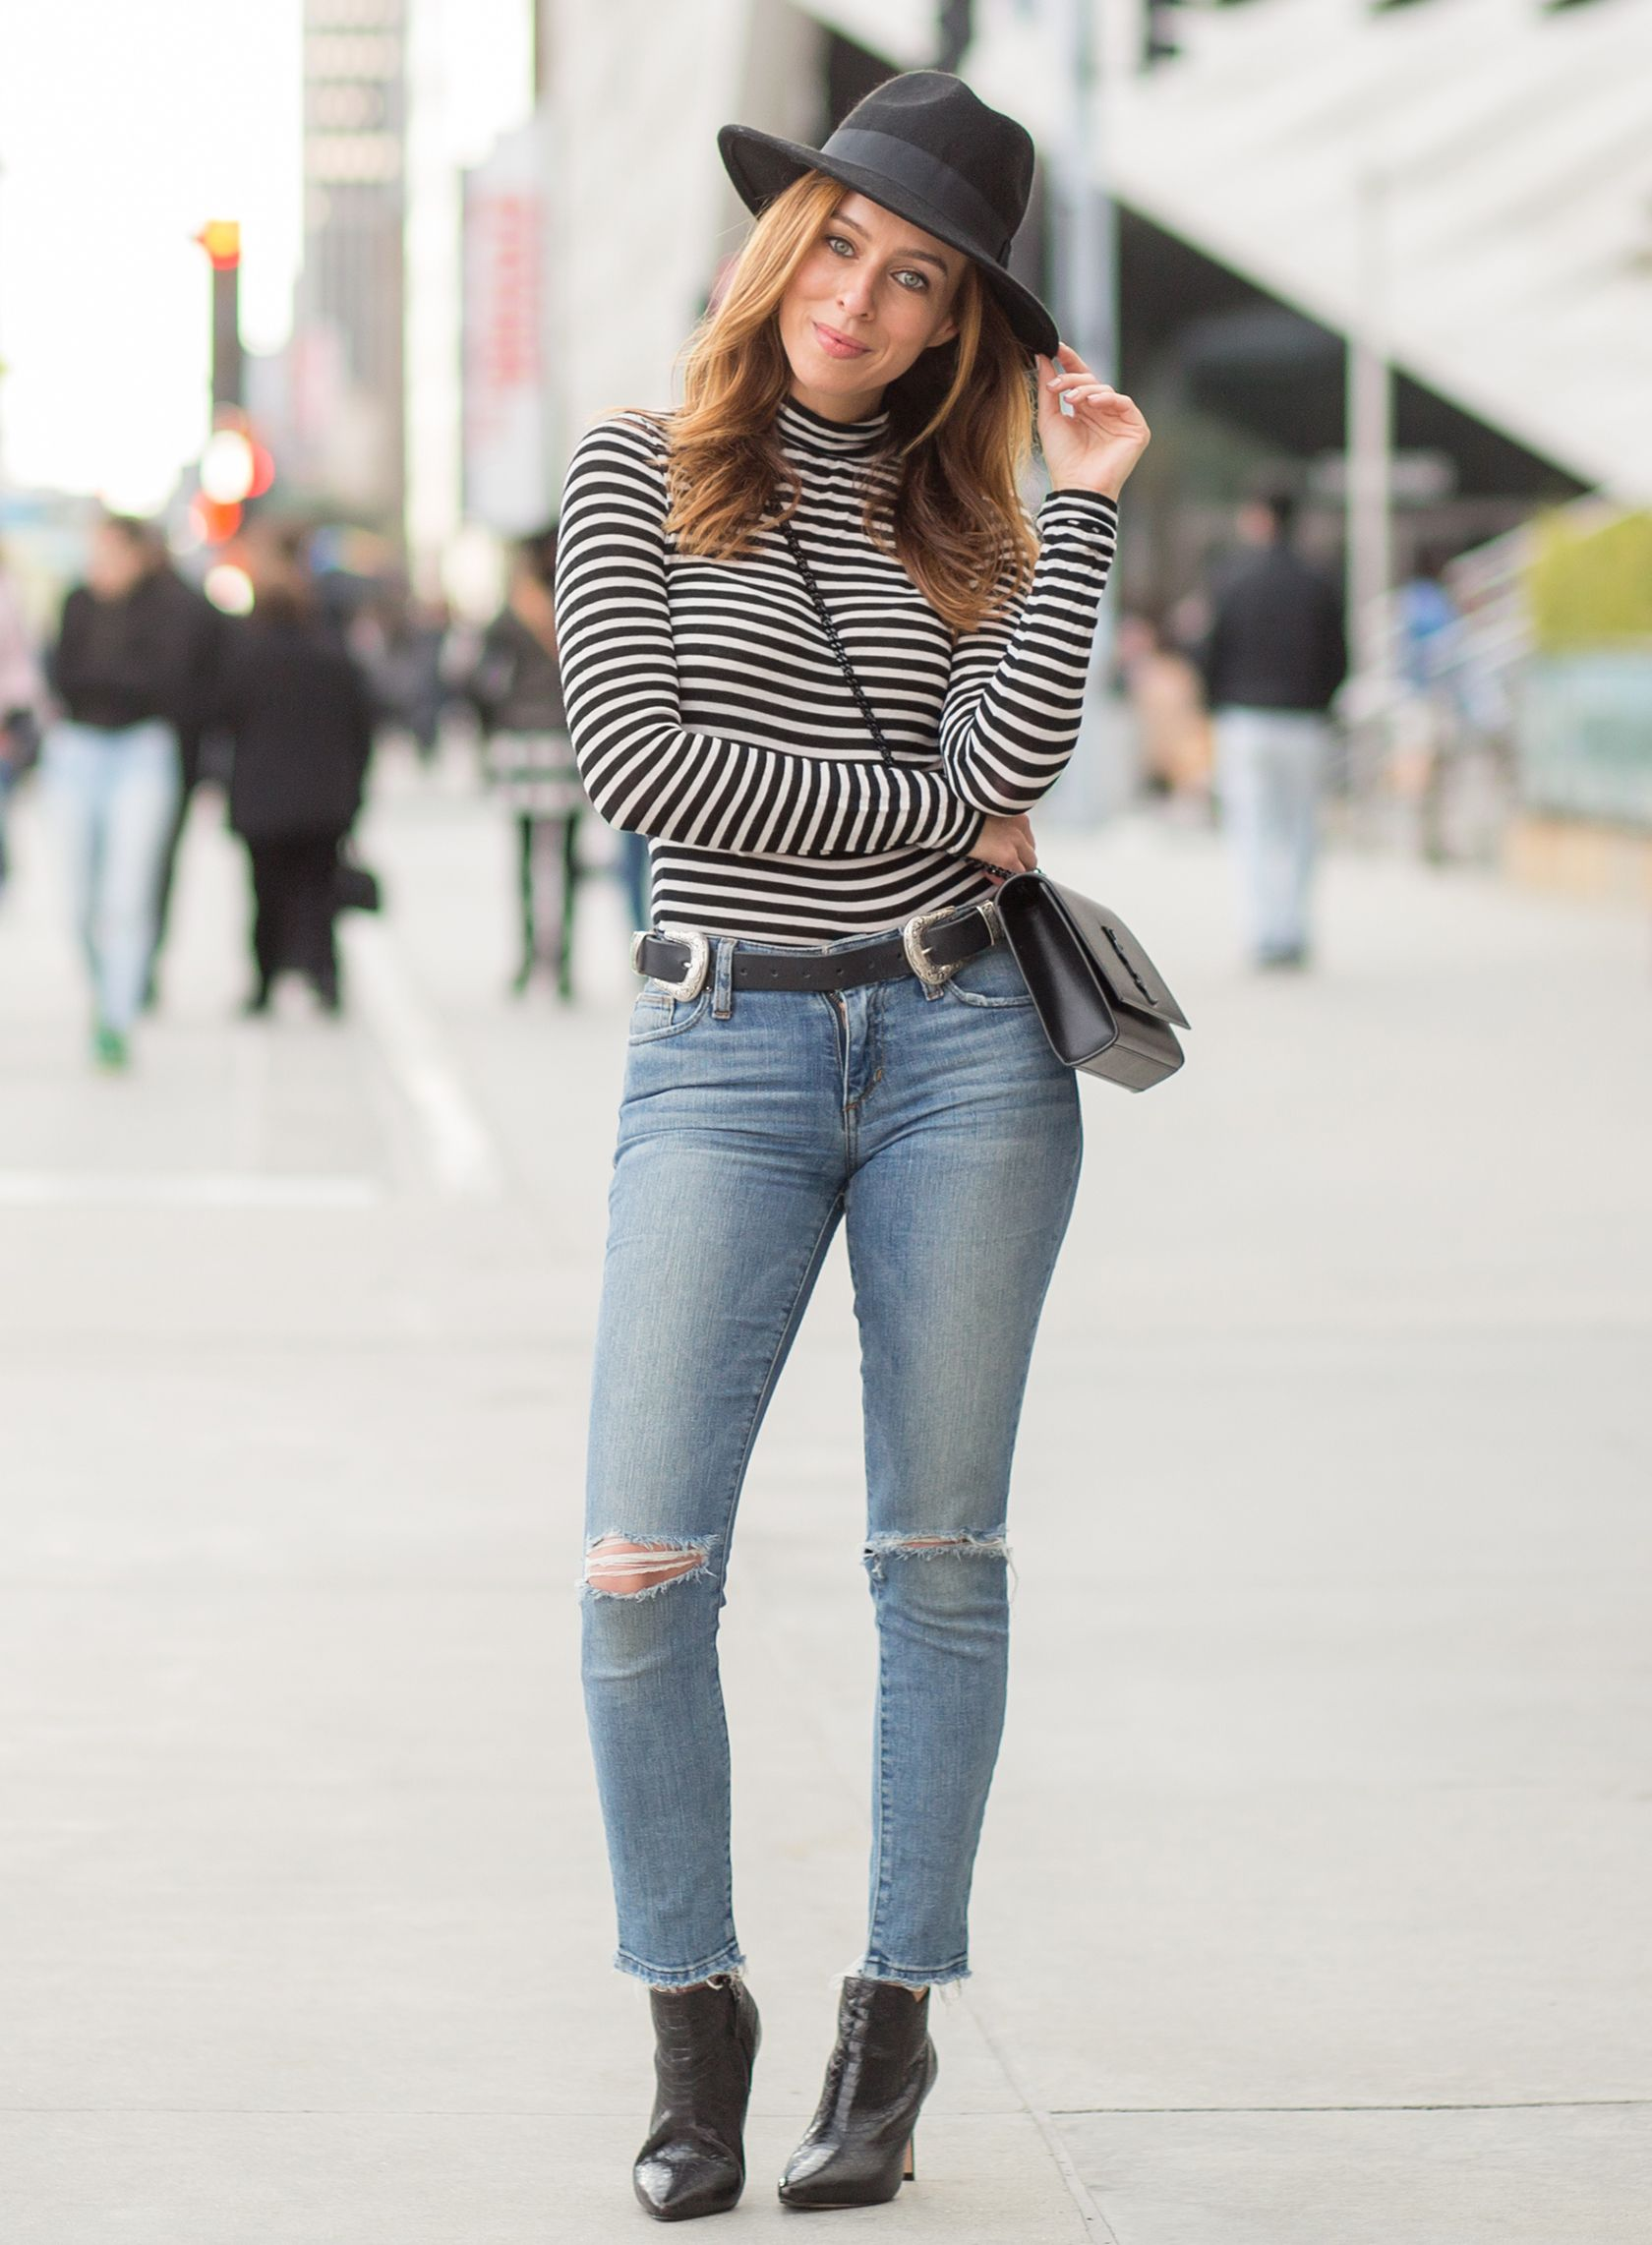 Los Angeles fashion blogger Sydne Summer street styles Day to Night in a  Striped Turtleneck and Jeans. Shop the look online! 988ba1674f